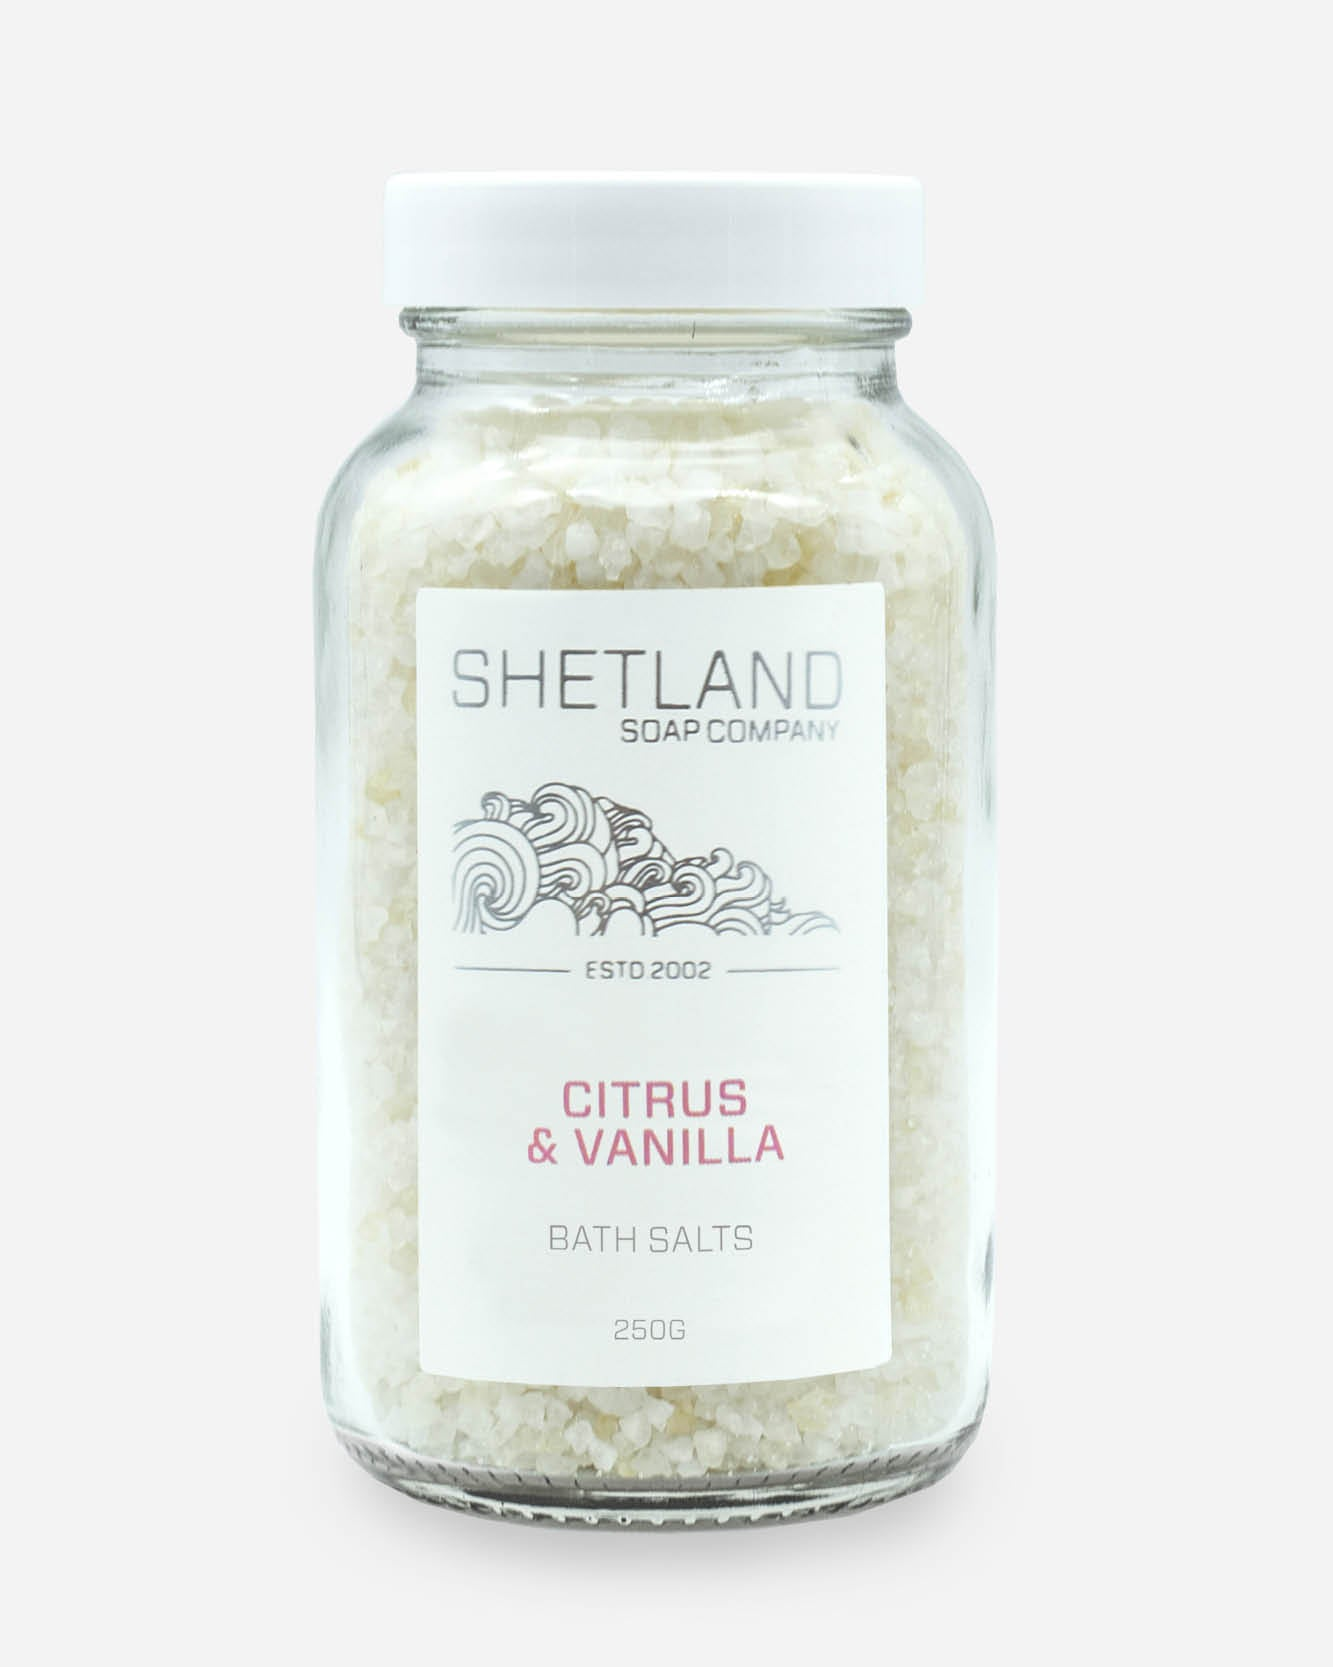 CITRUS & VANILLA BATH SALTS